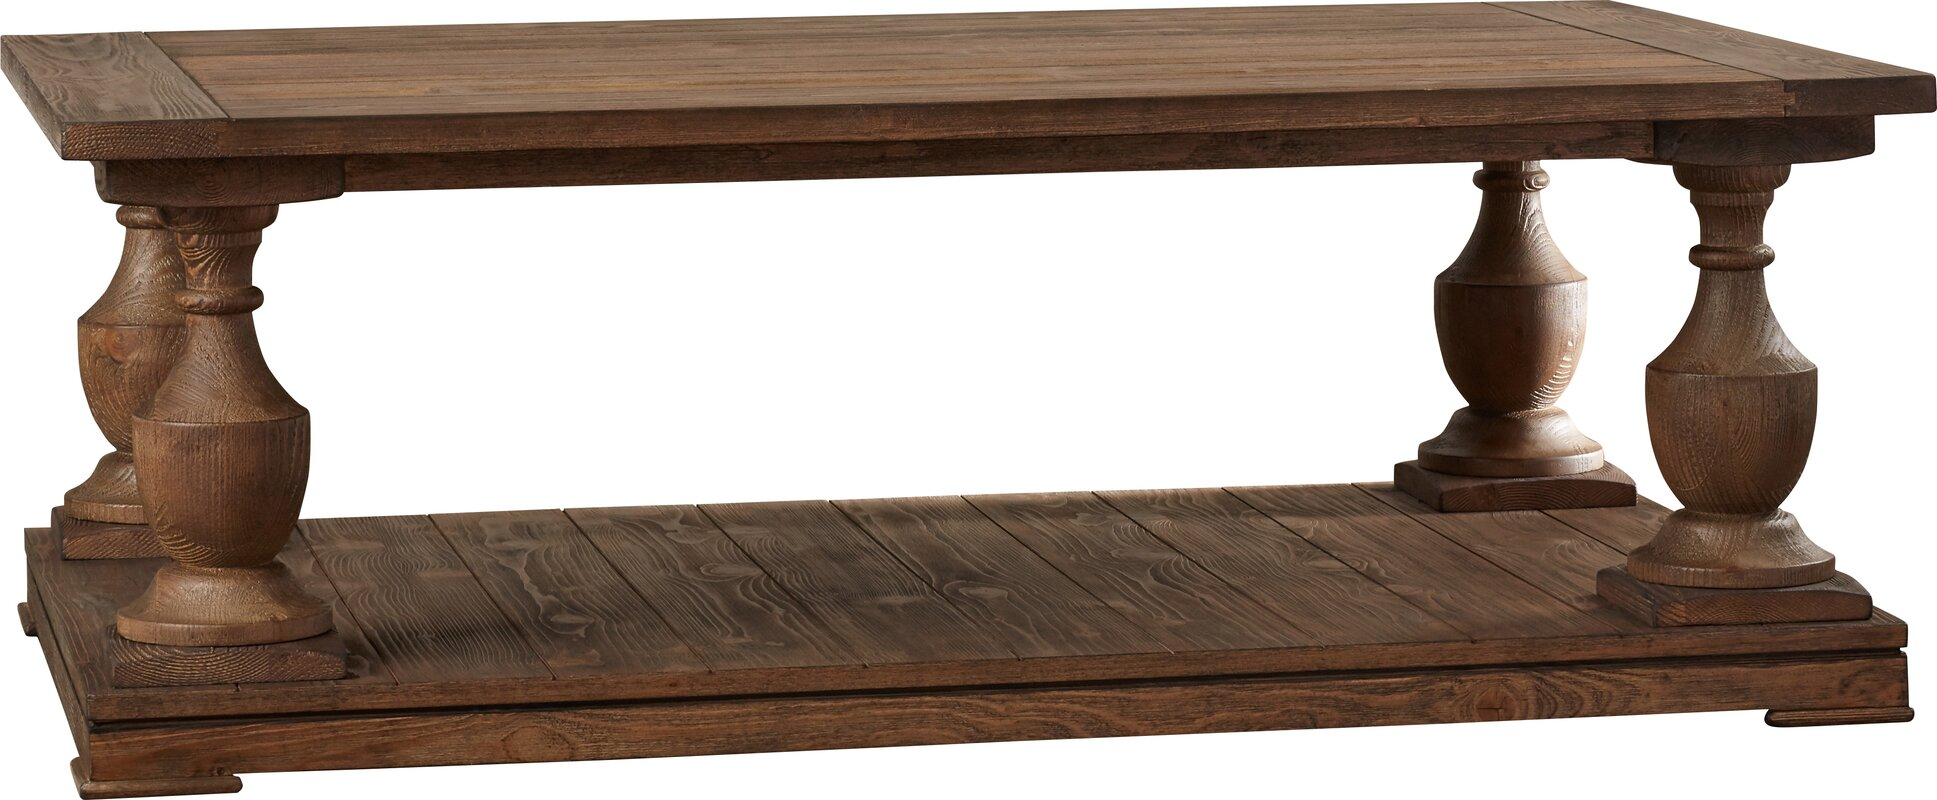 French country coffee tables youll love wayfair etchemin coffee table geotapseo Choice Image